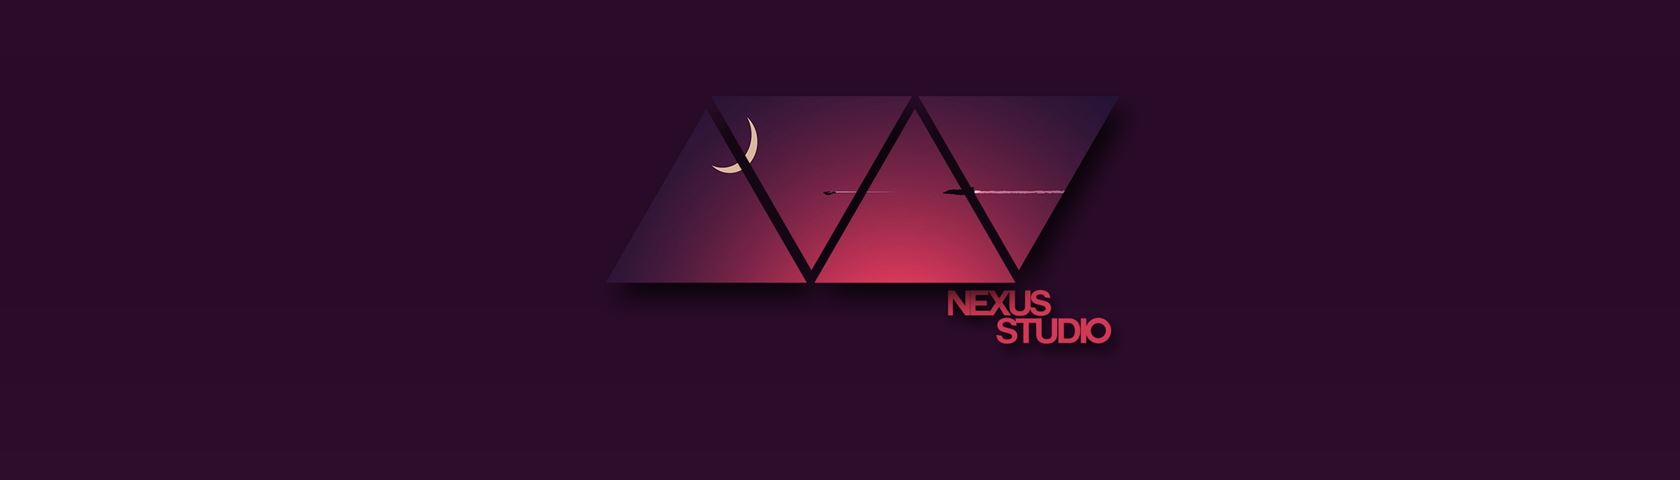 Nexus Studio Wallpaper